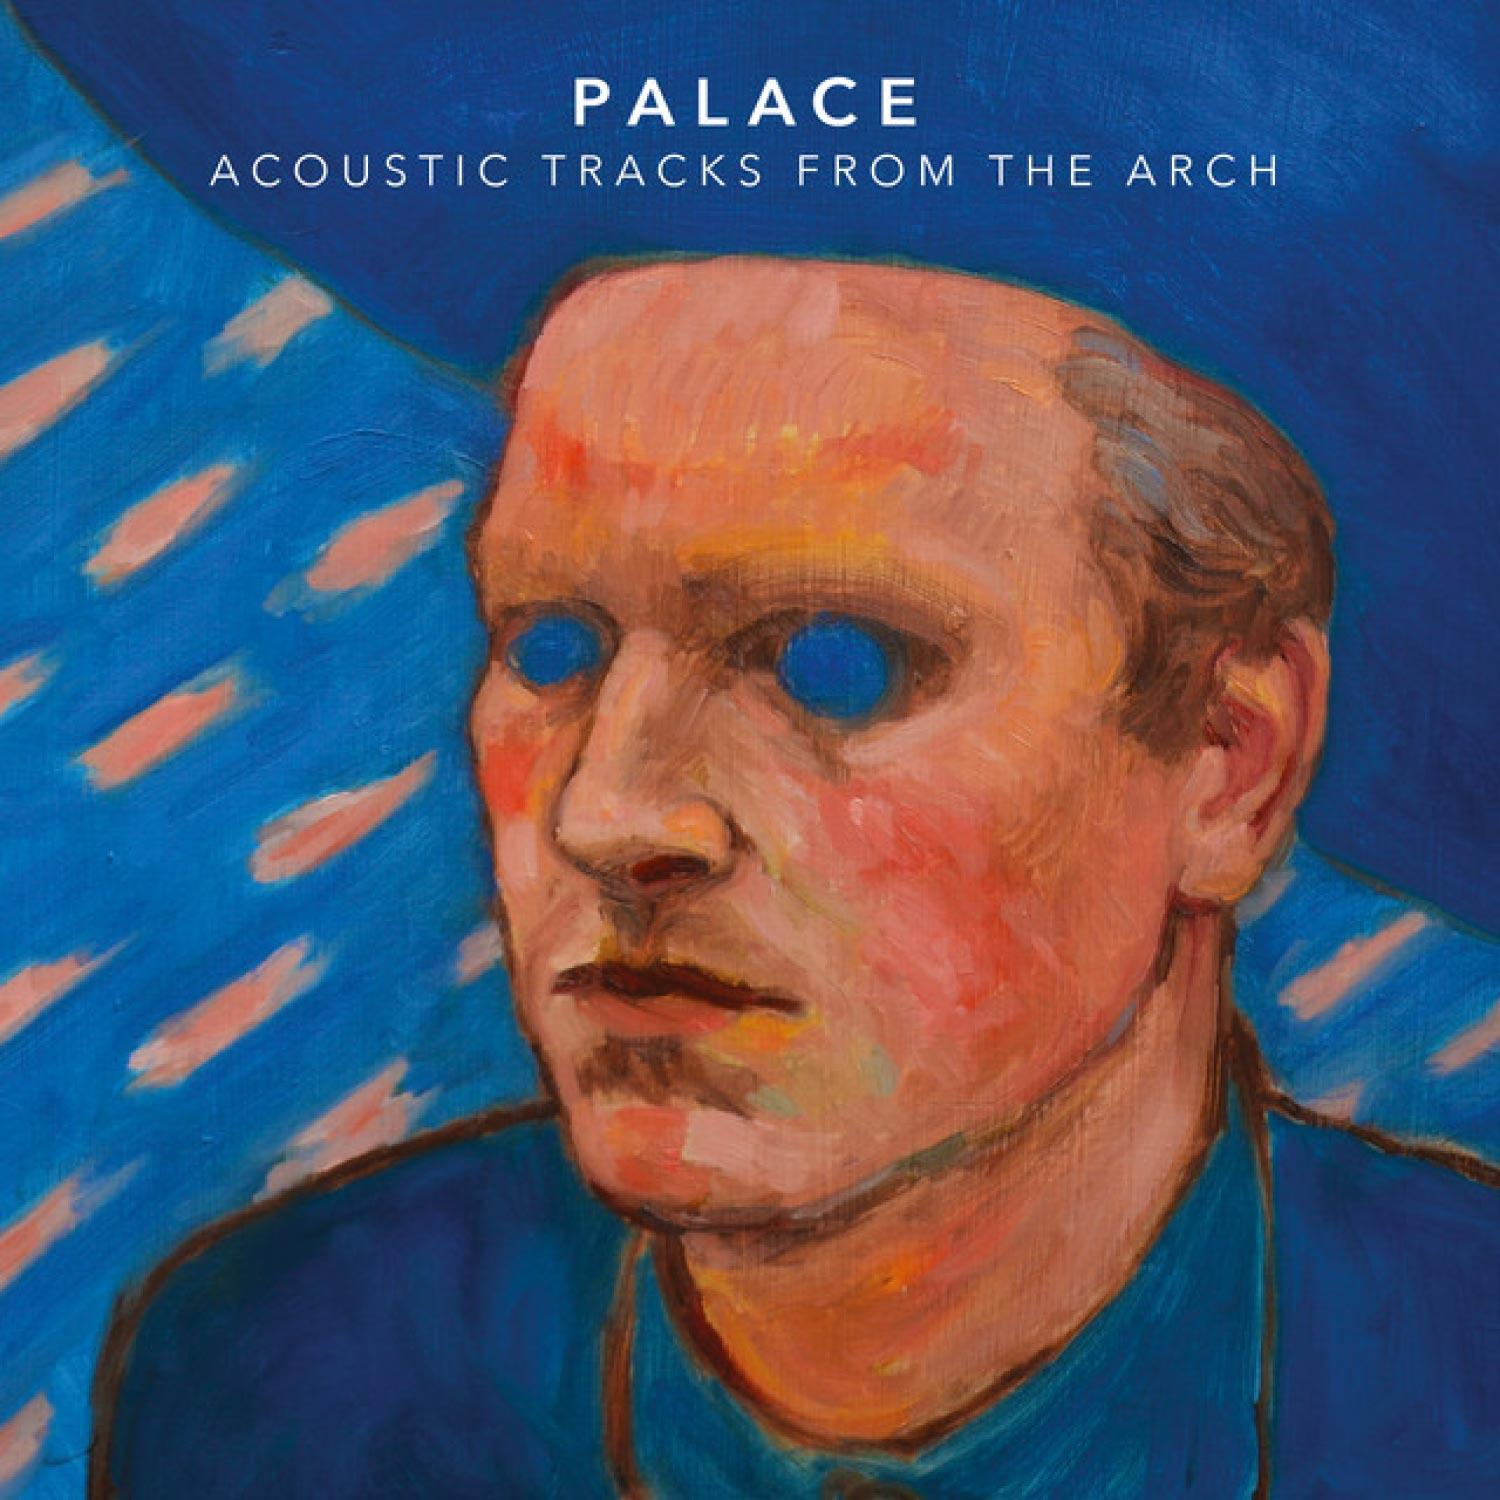 Acoustic Tracks from the Arch by Palace